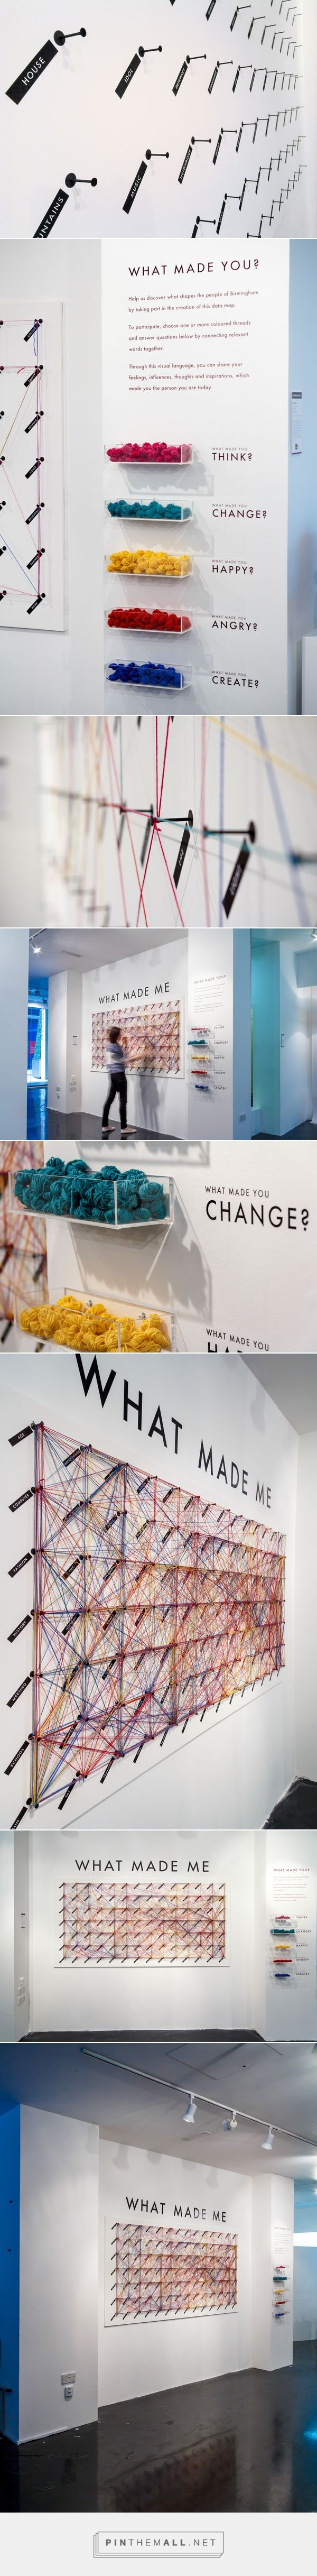 WHAT MADE ME Interactive Public Installation on Behance... - a grouped images picture - Pin Them All